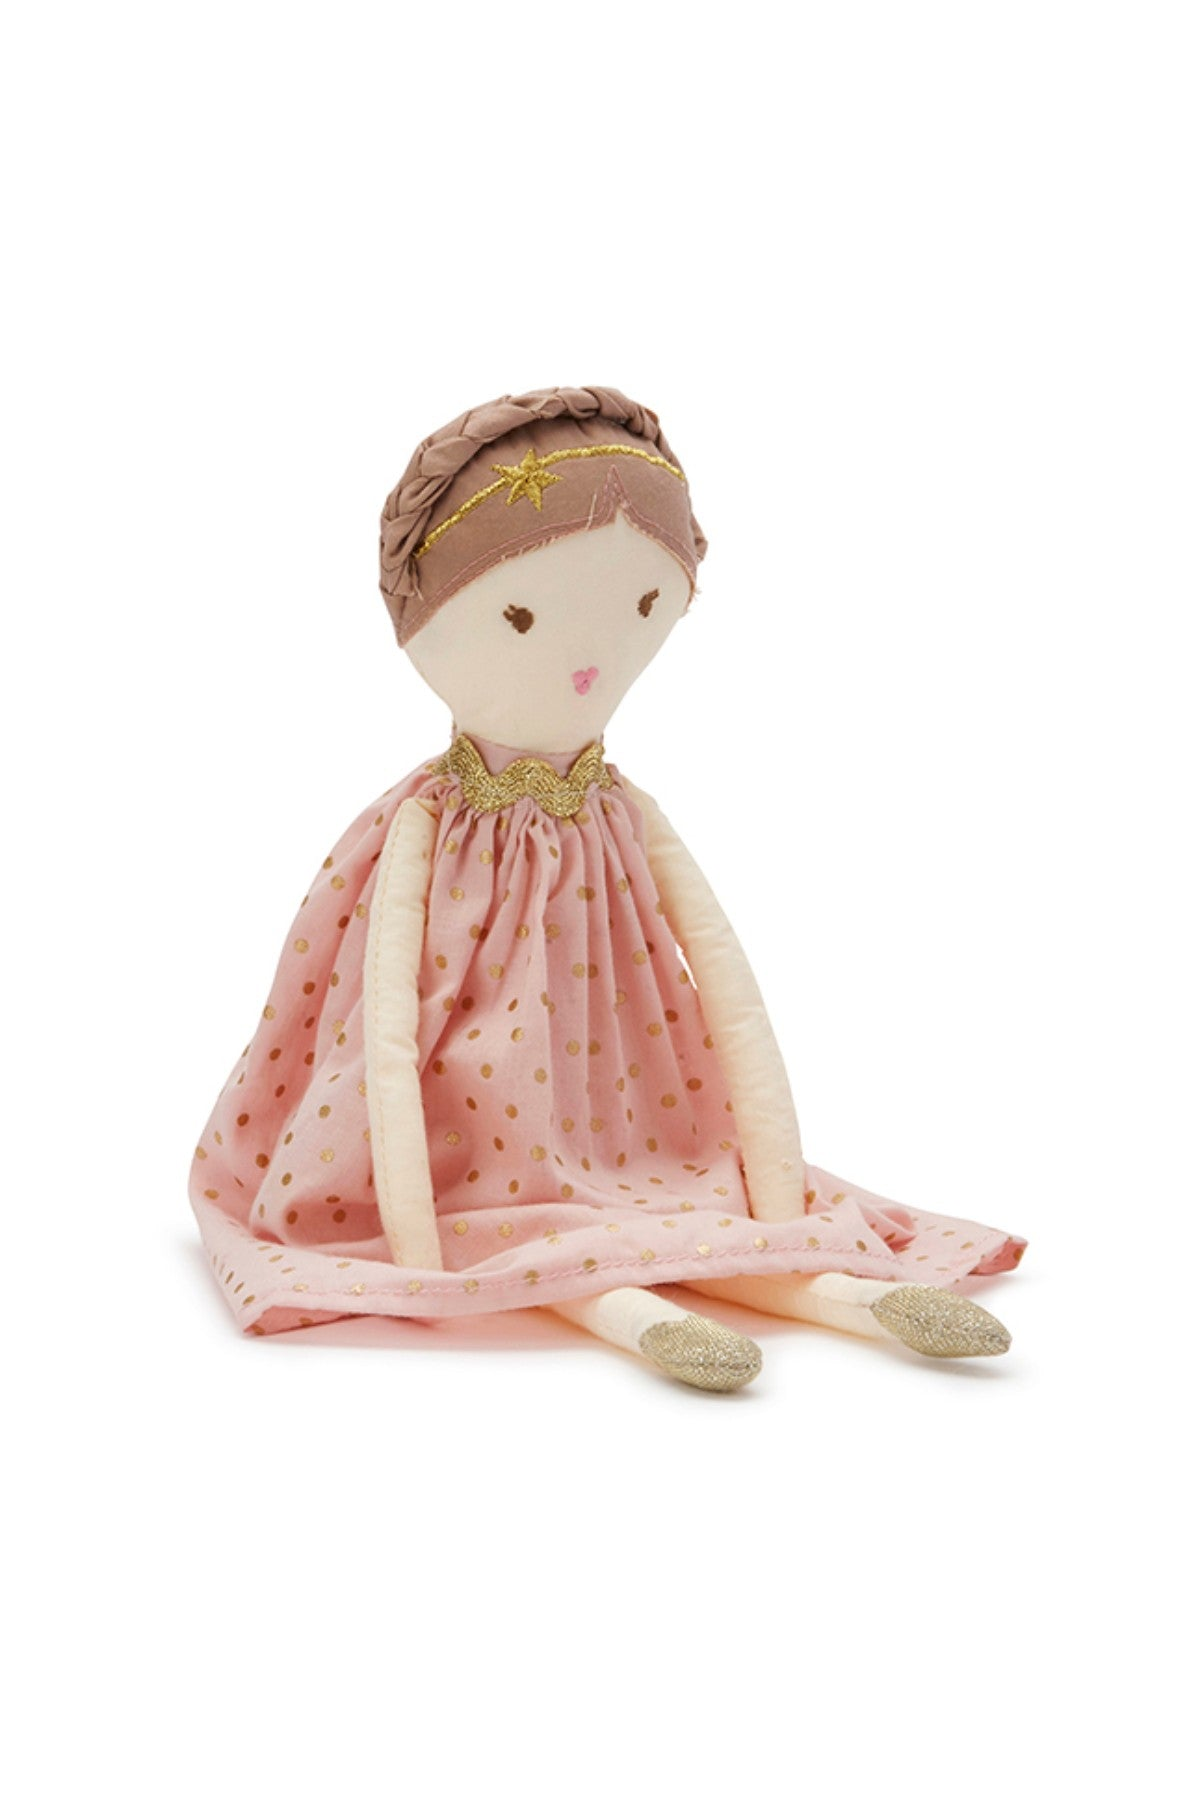 Dottie doll pink